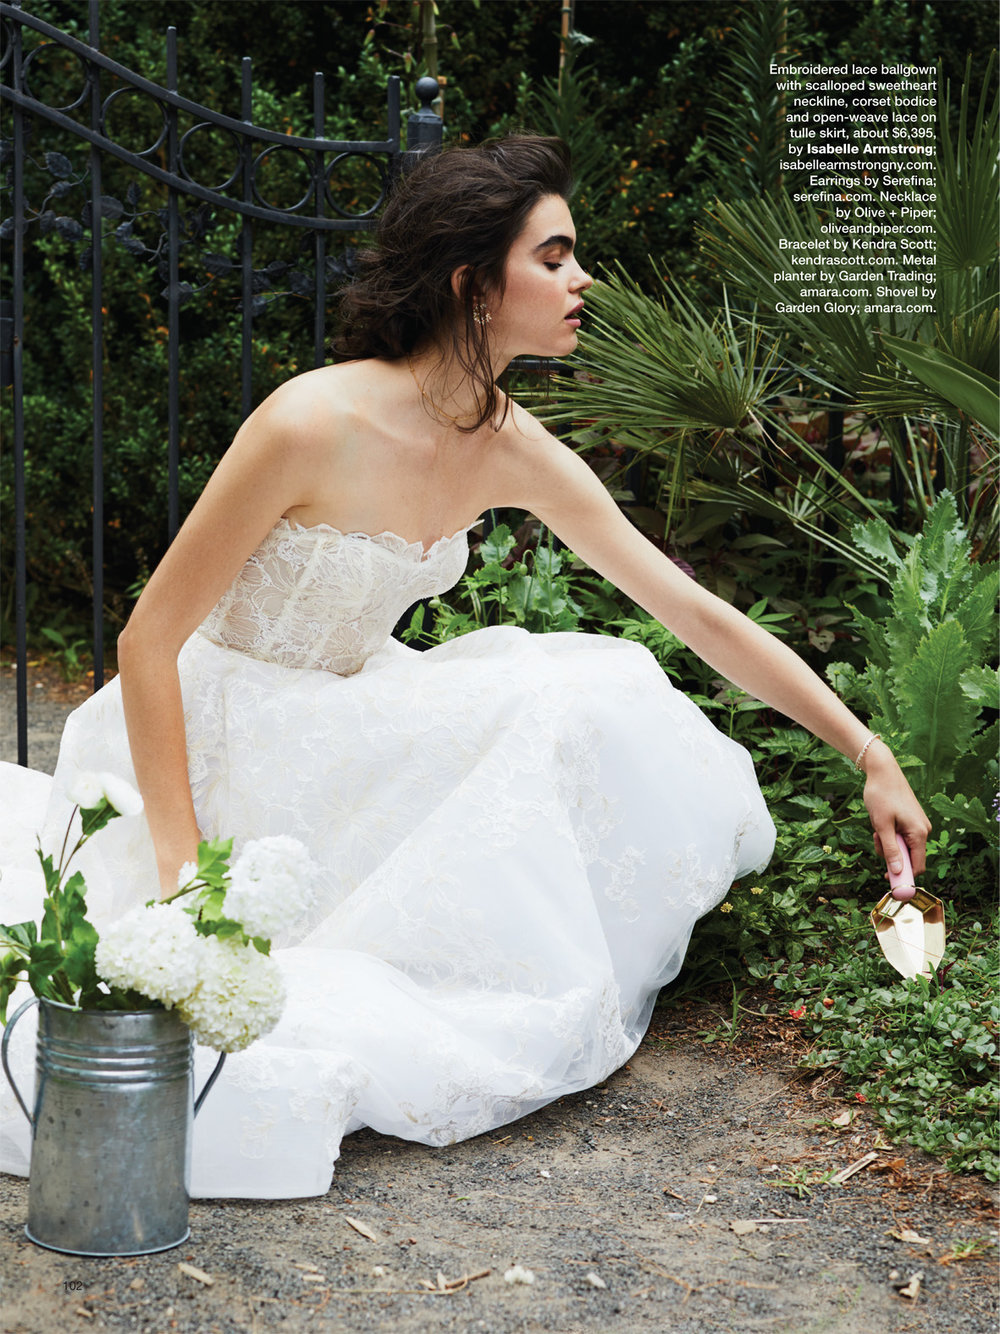 Bridal Guide Magazine - Isabelle Armstrong in the November issue!